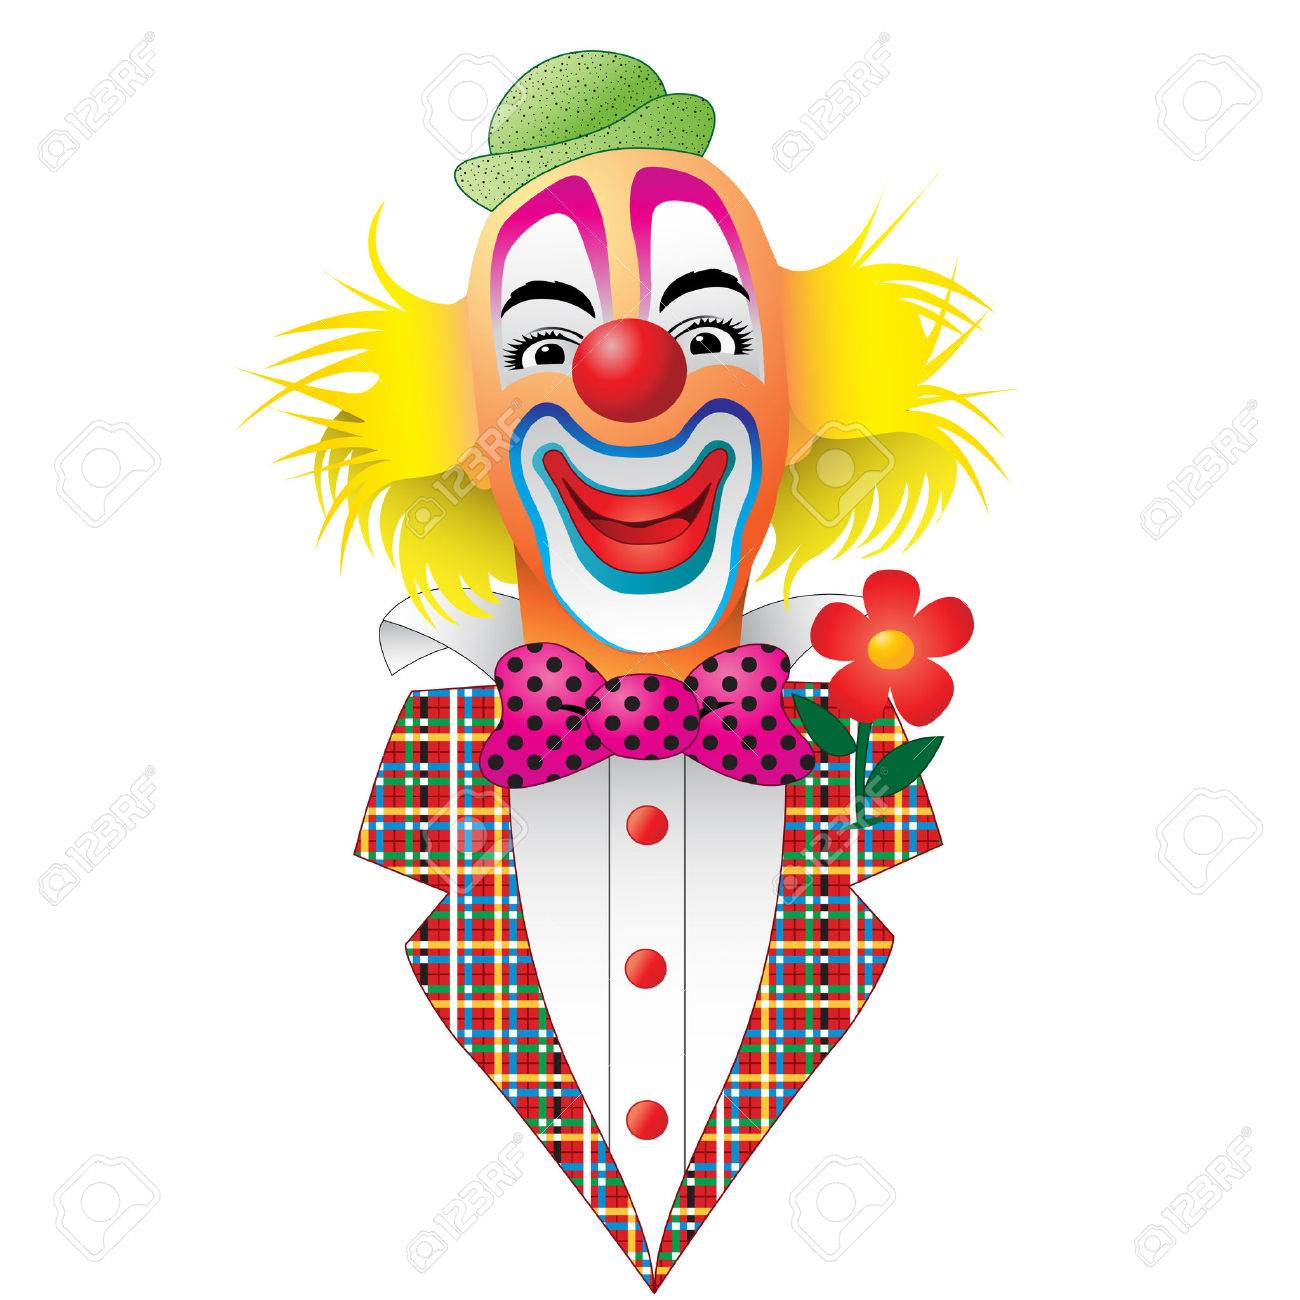 clown royalty free cliparts vectors and stock illustration